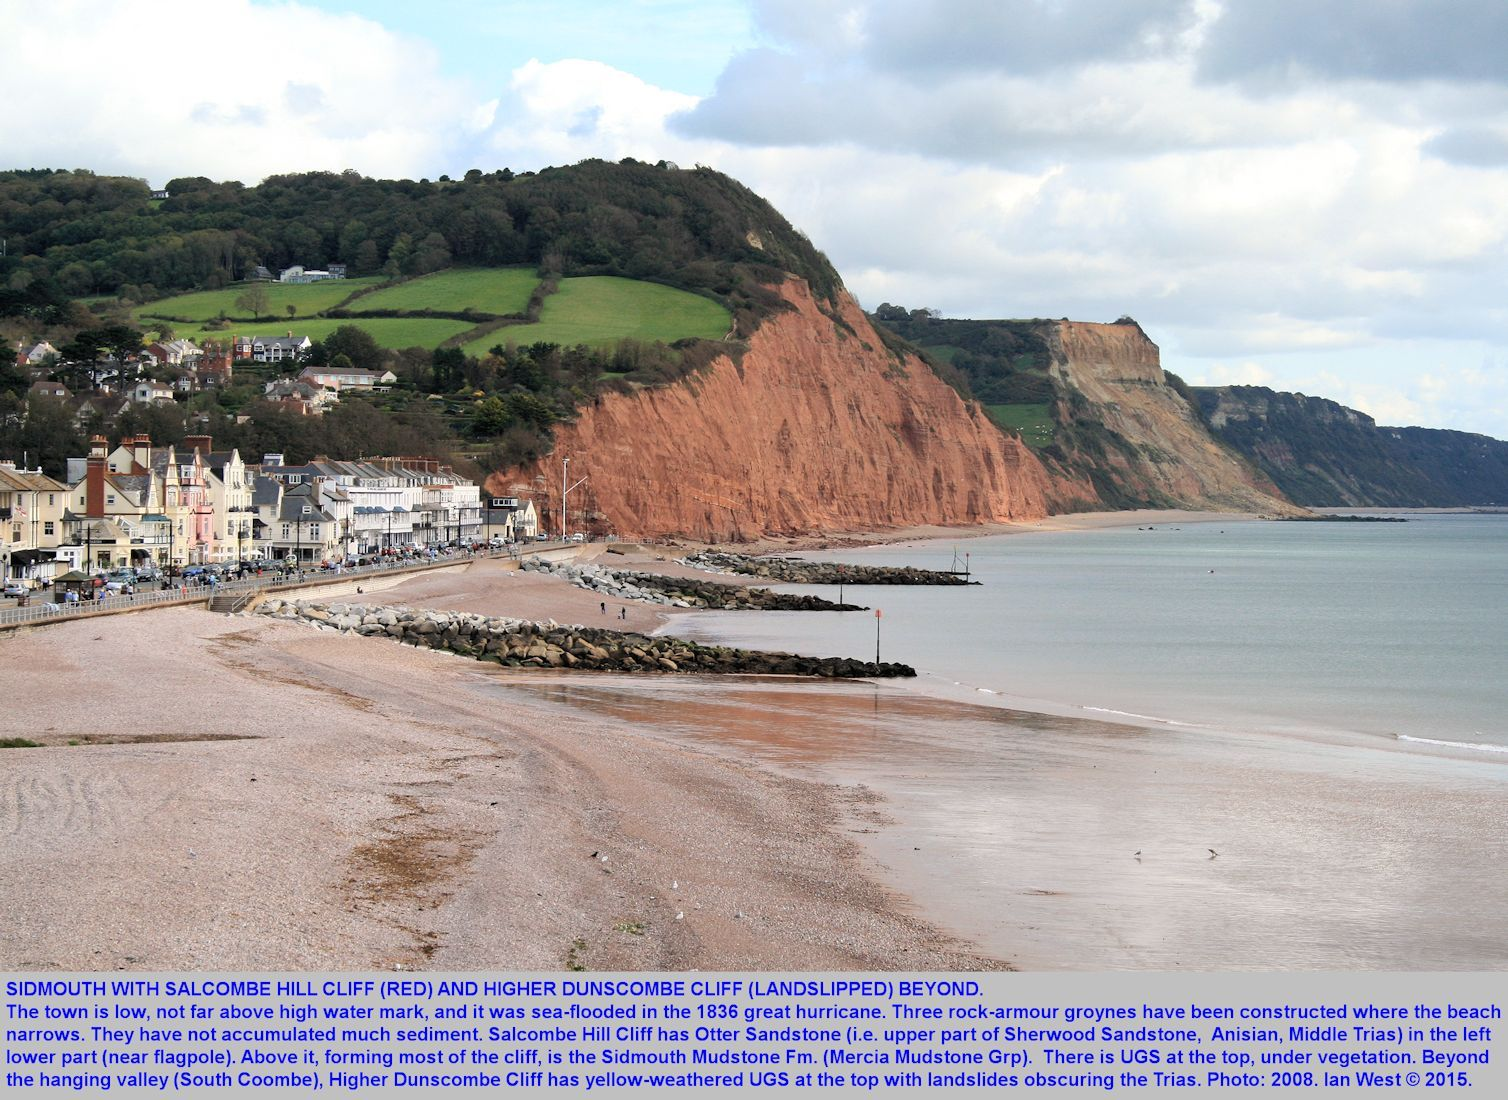 A general view to the east at Sidmouth, Devon, showing Salcombe Hill Cliff and Higher Dunscombe Cliff, with Triassic strata overlain unconformably by Cretaceous Upper Greensand